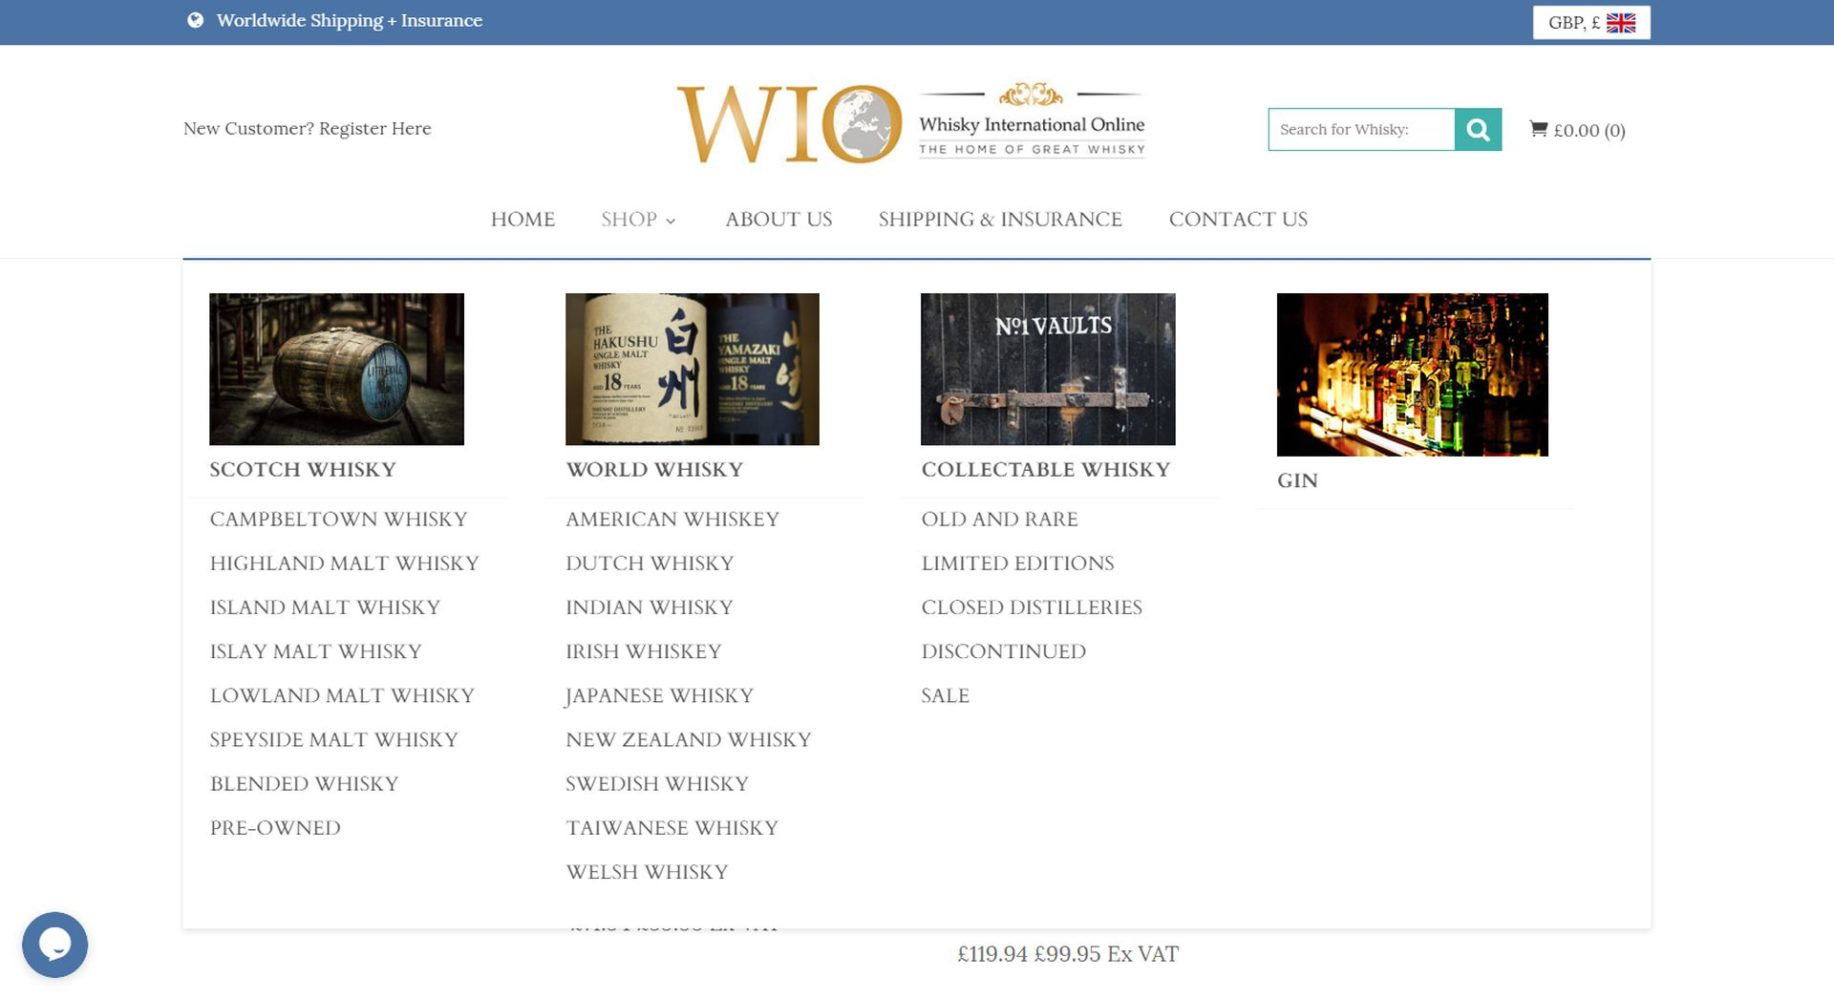 Whisky International Online Categories